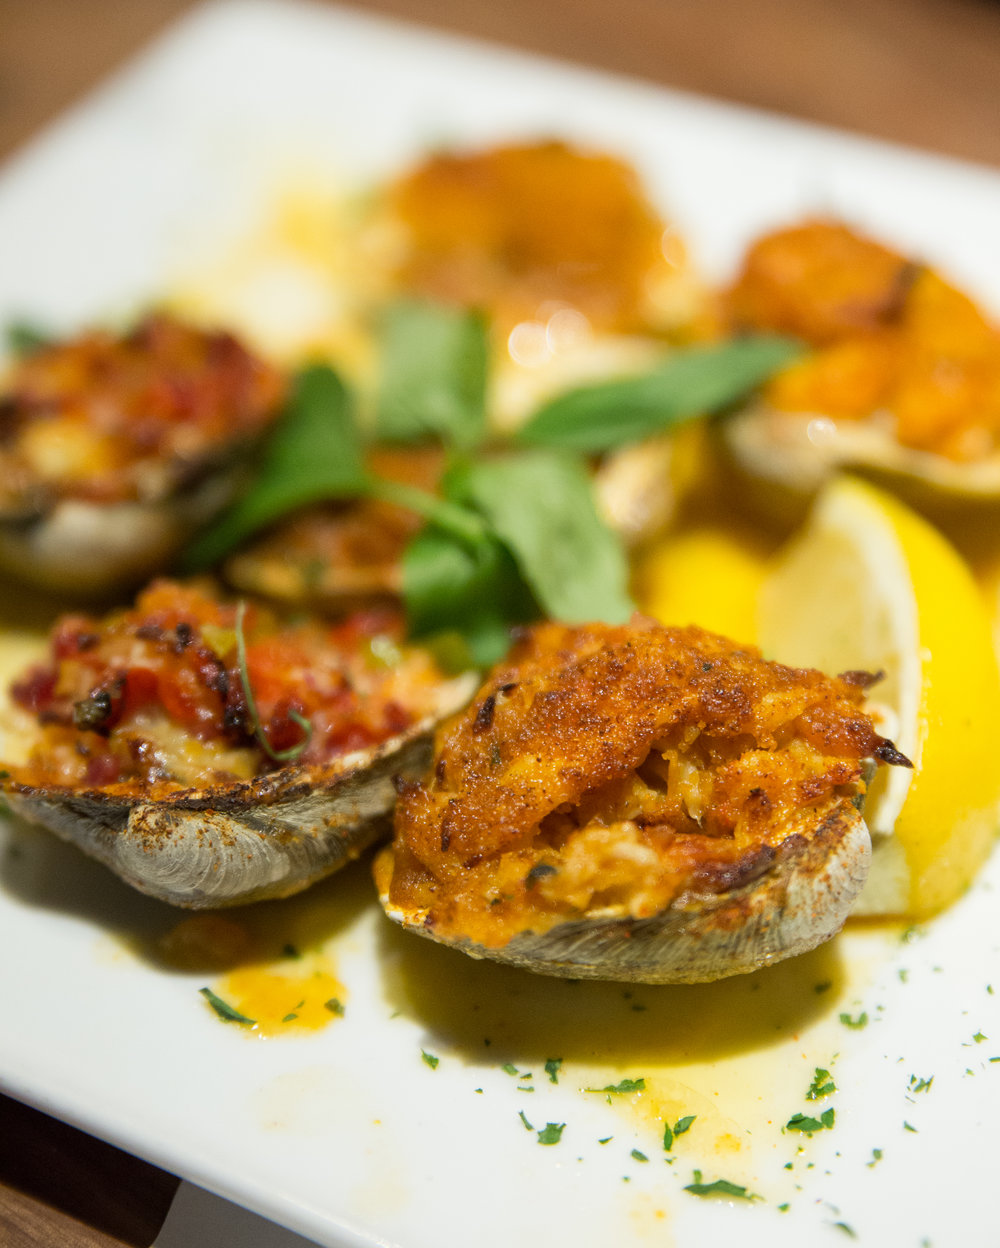 The Clams Trio special plate features a variety of antipasti menu items including two Baked Clams, Clams Casino and Stuffed Clams, which all brimmed with impeccable freshness.